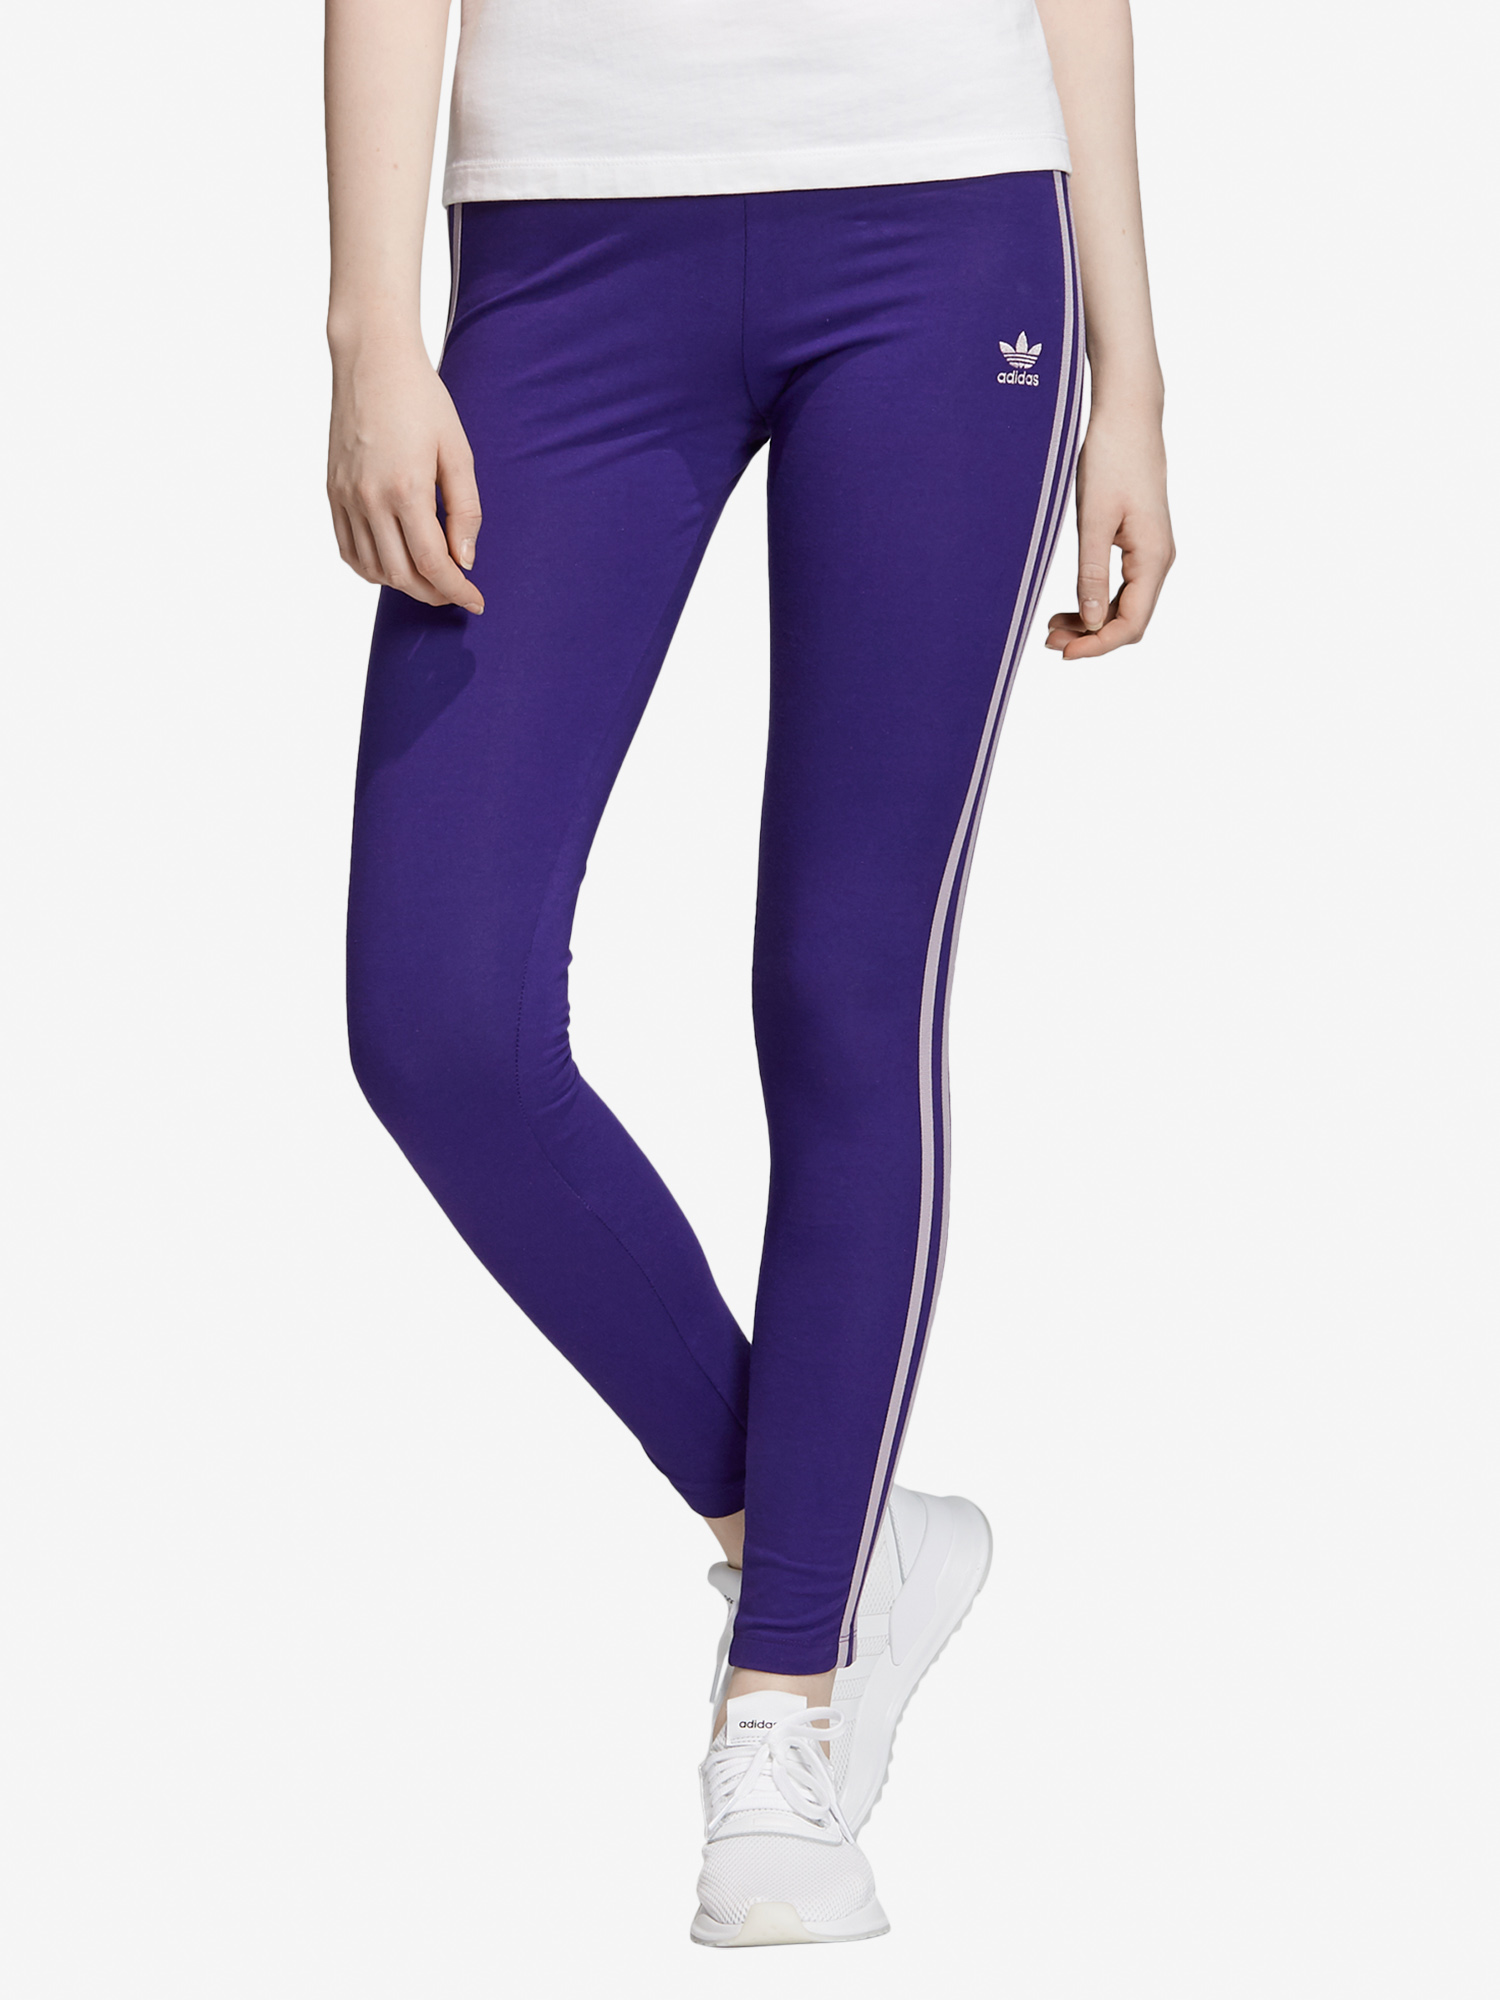 Legíny adidas Originals 3 Str Tight Barevná